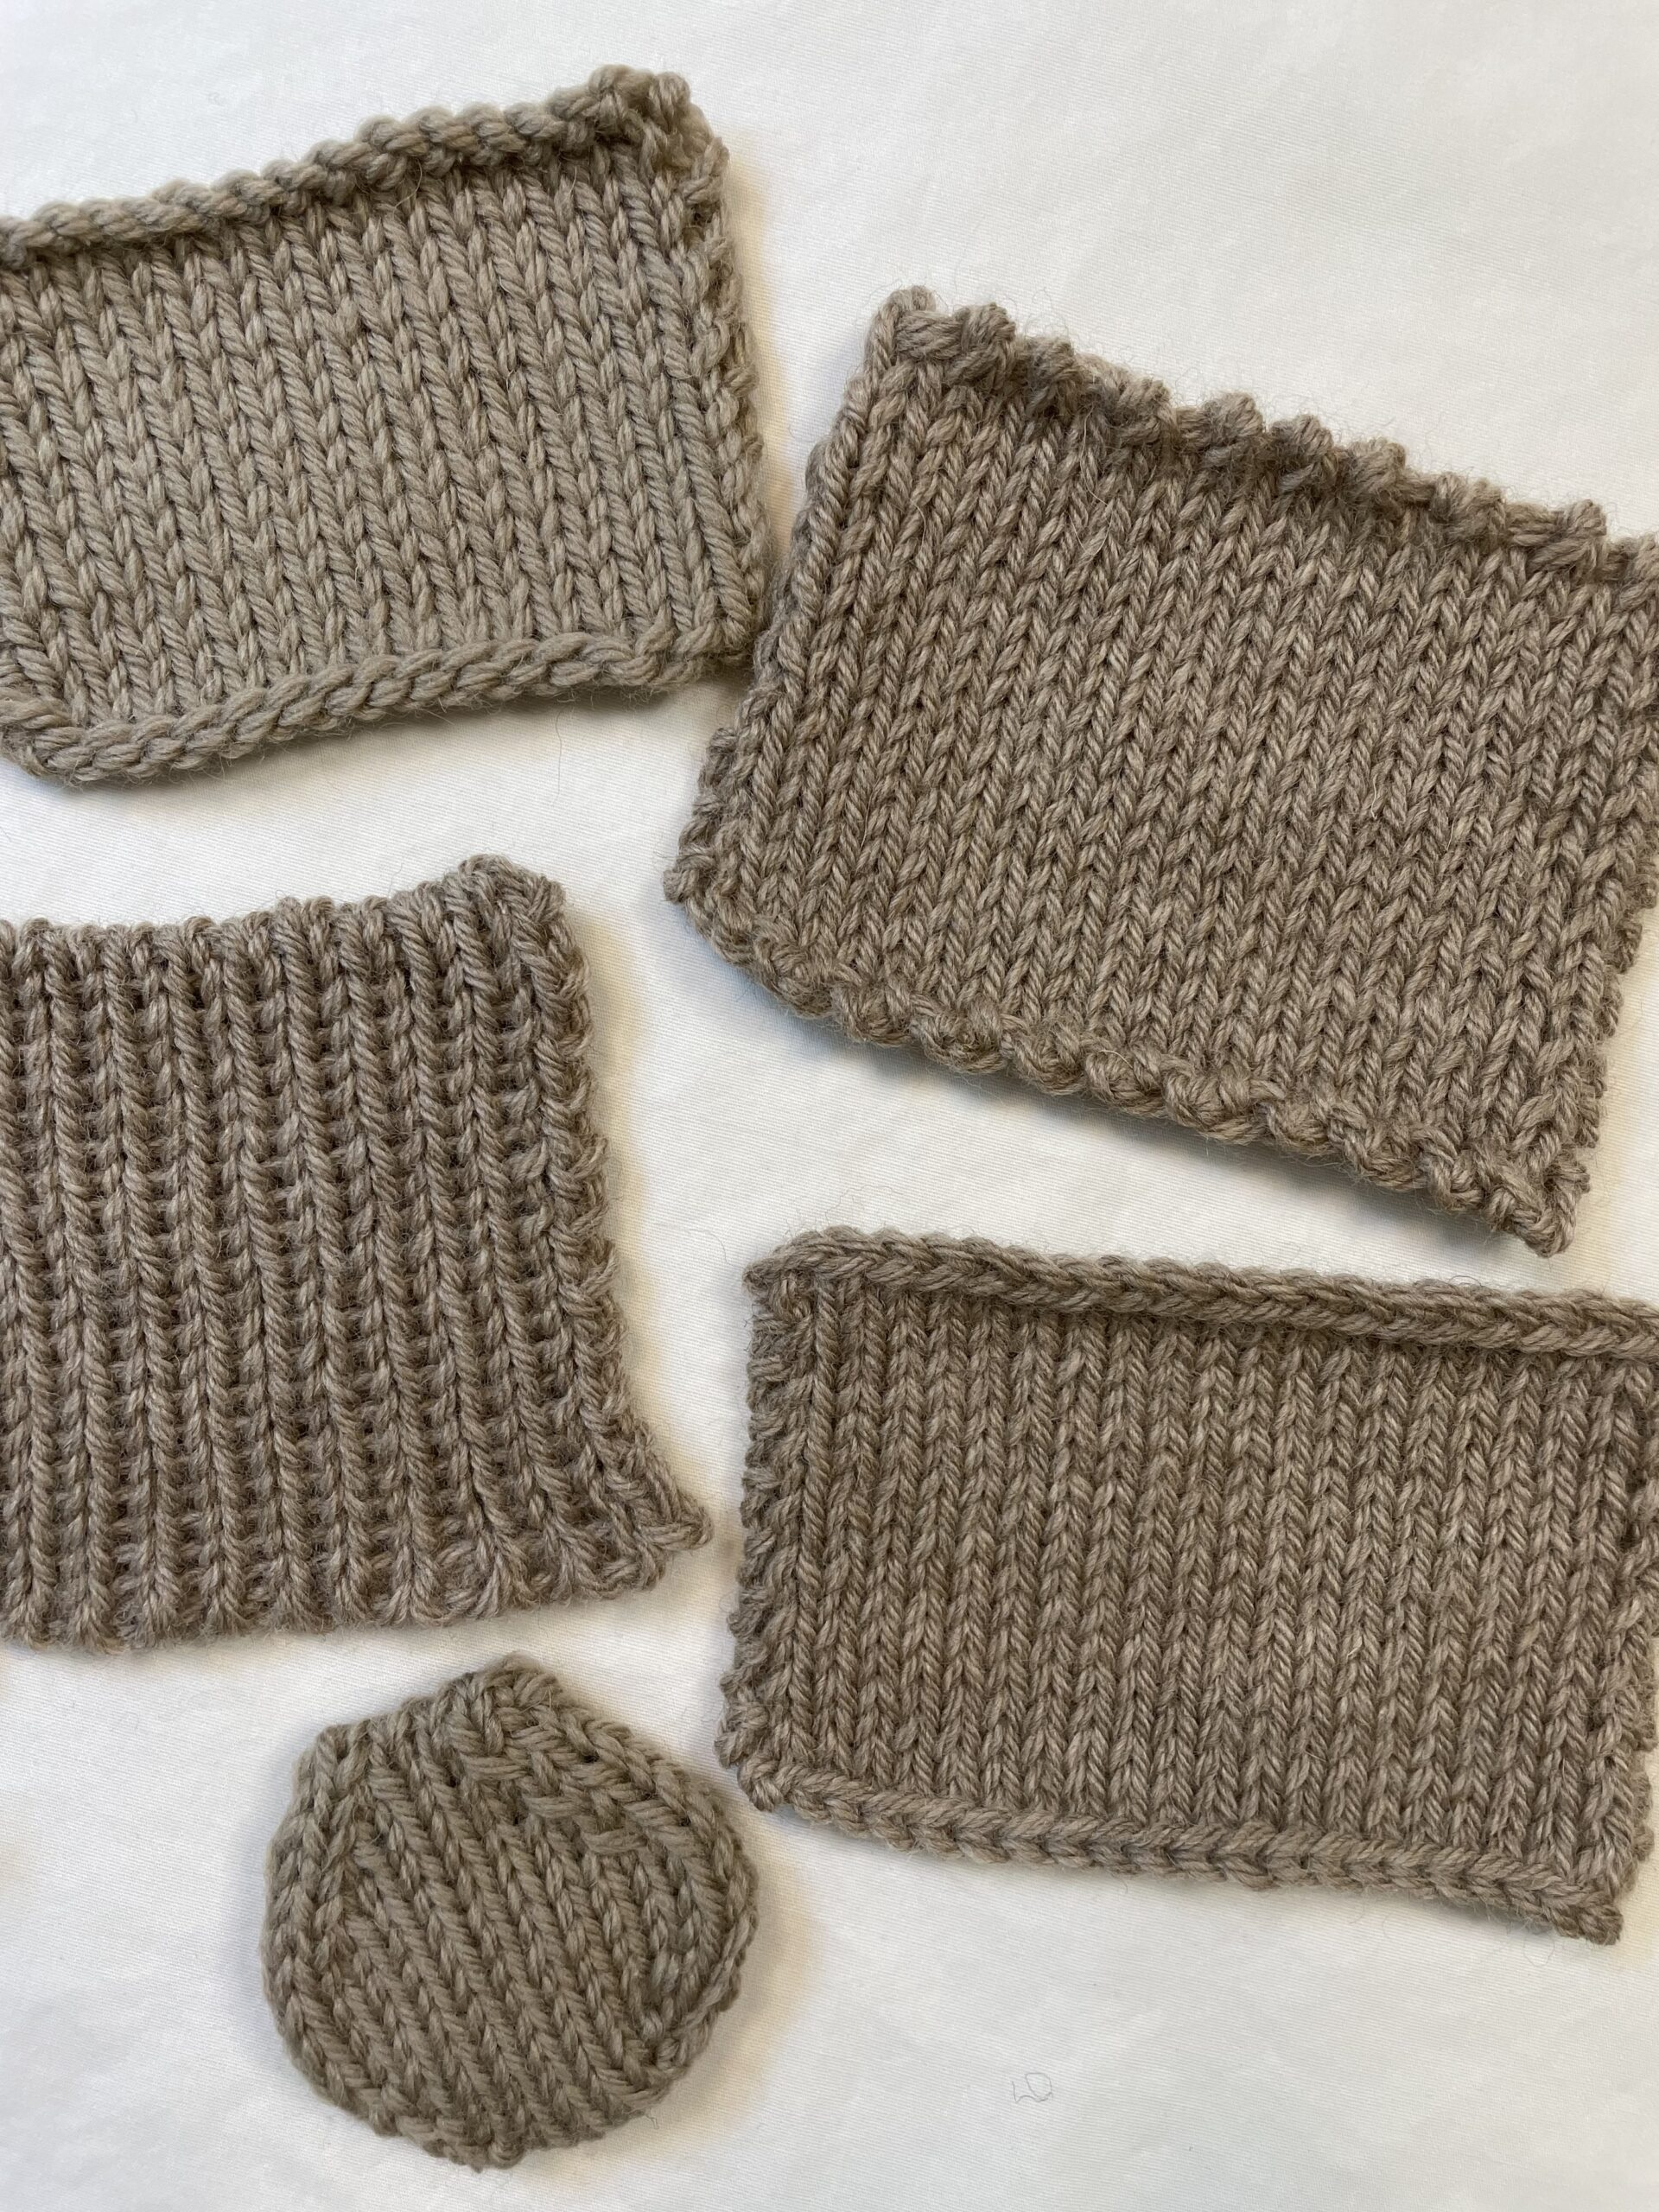 Matching Cast-Ons and Bind-Offs